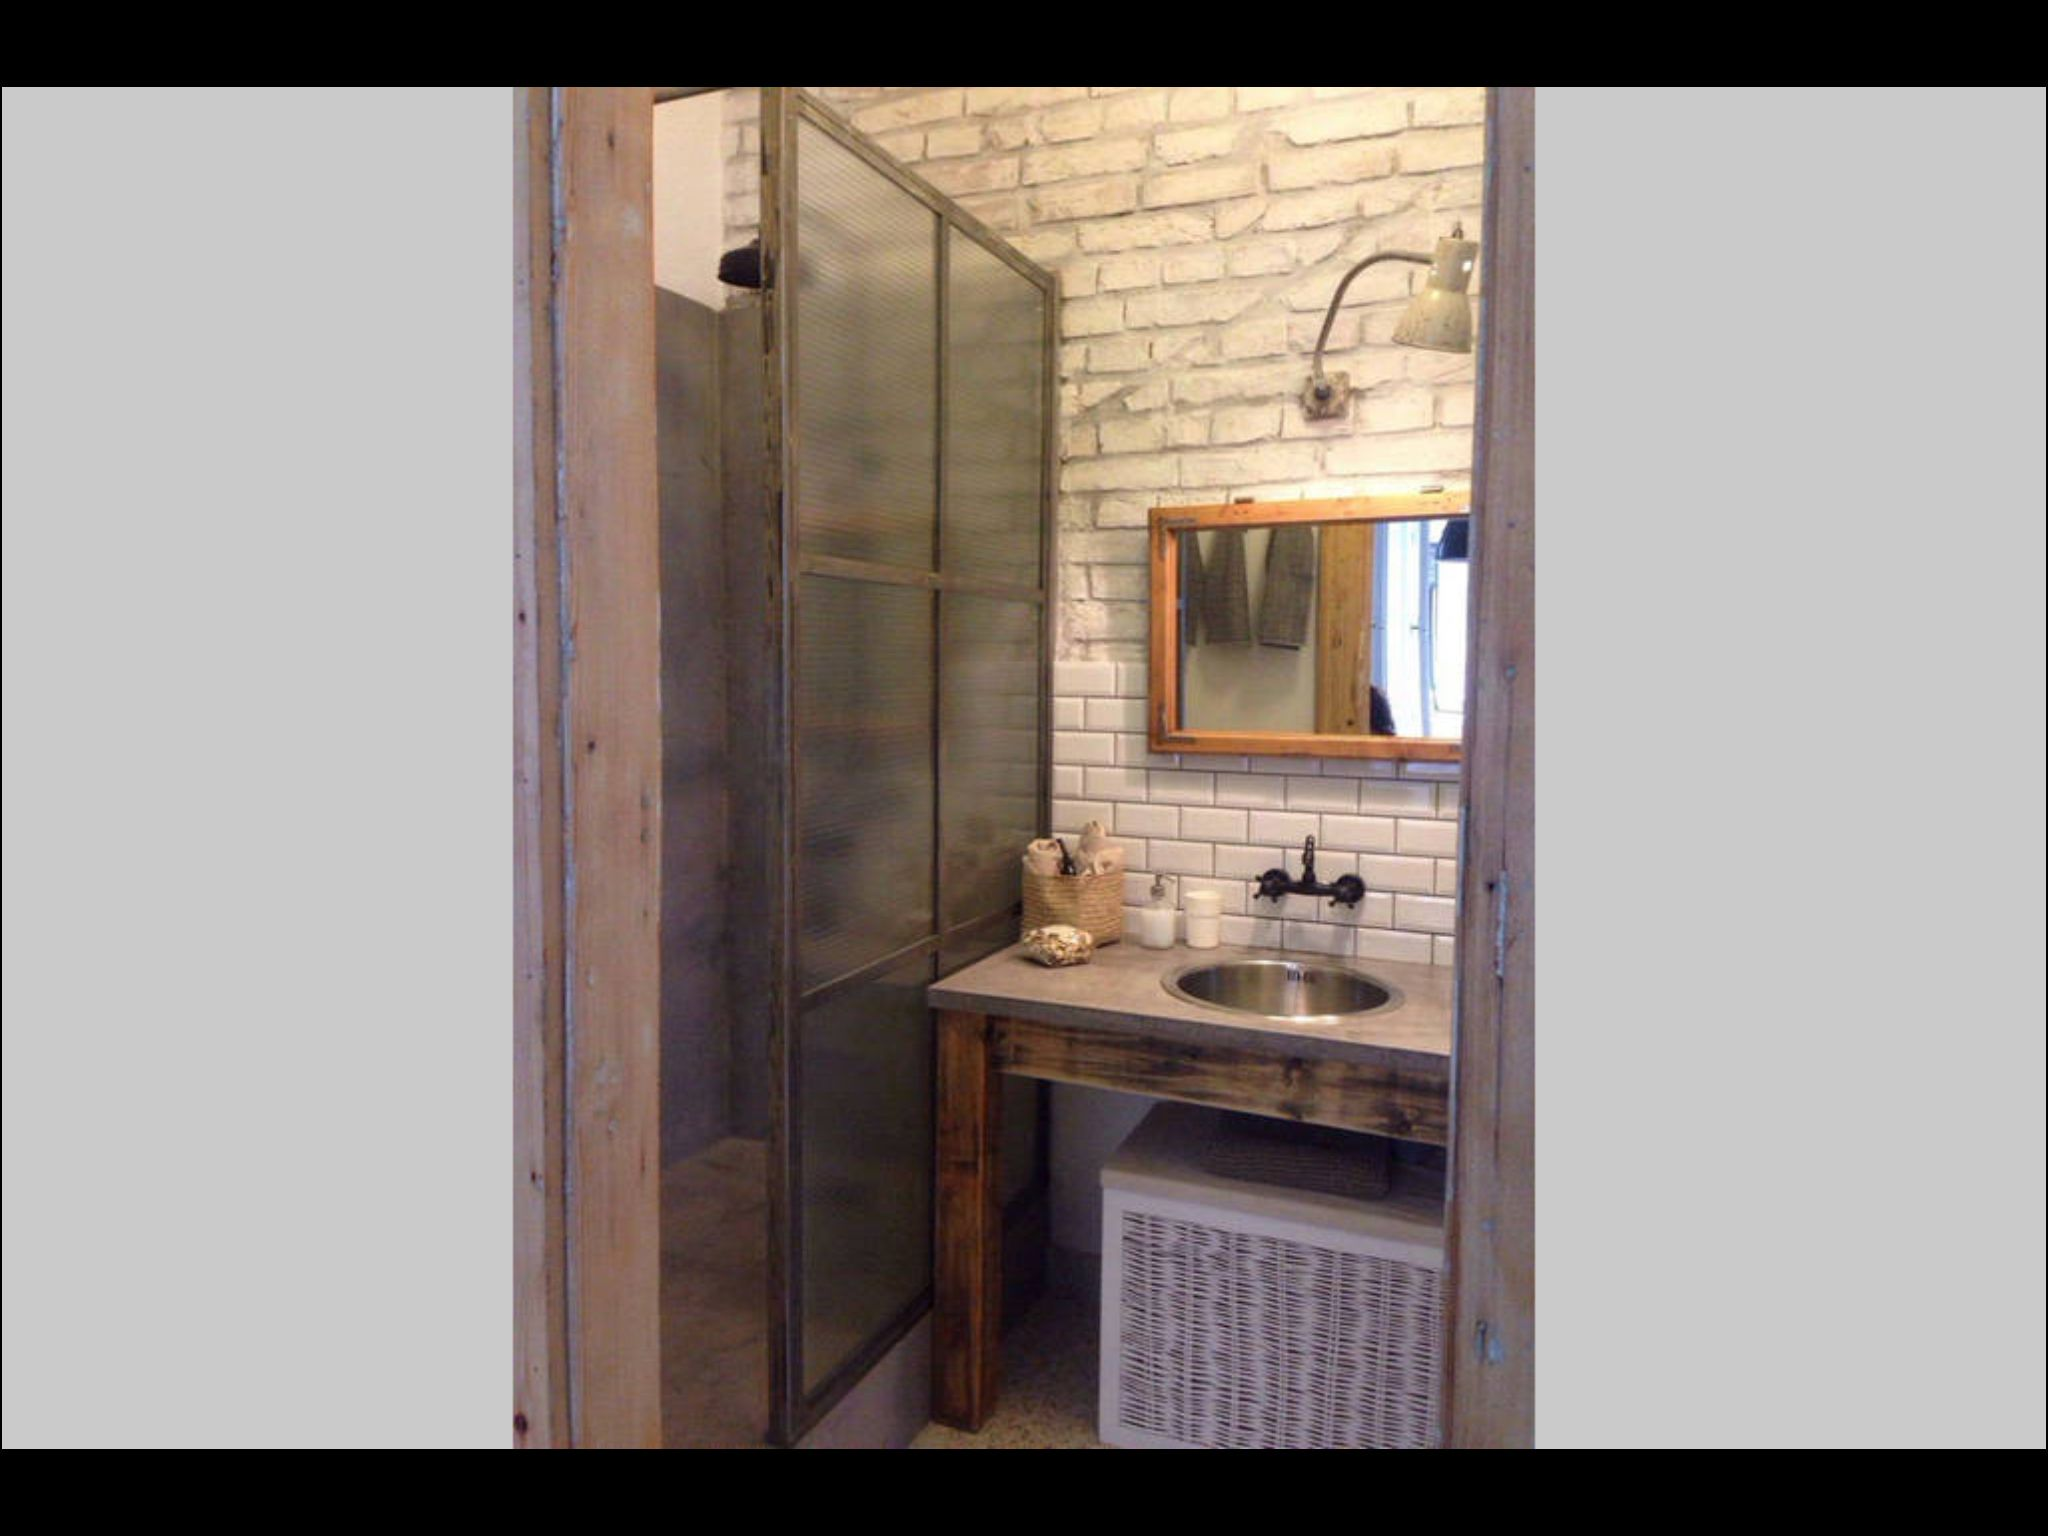 Bathroom Https Airbnb Com Rooms 7442907 User_id 23002776 S